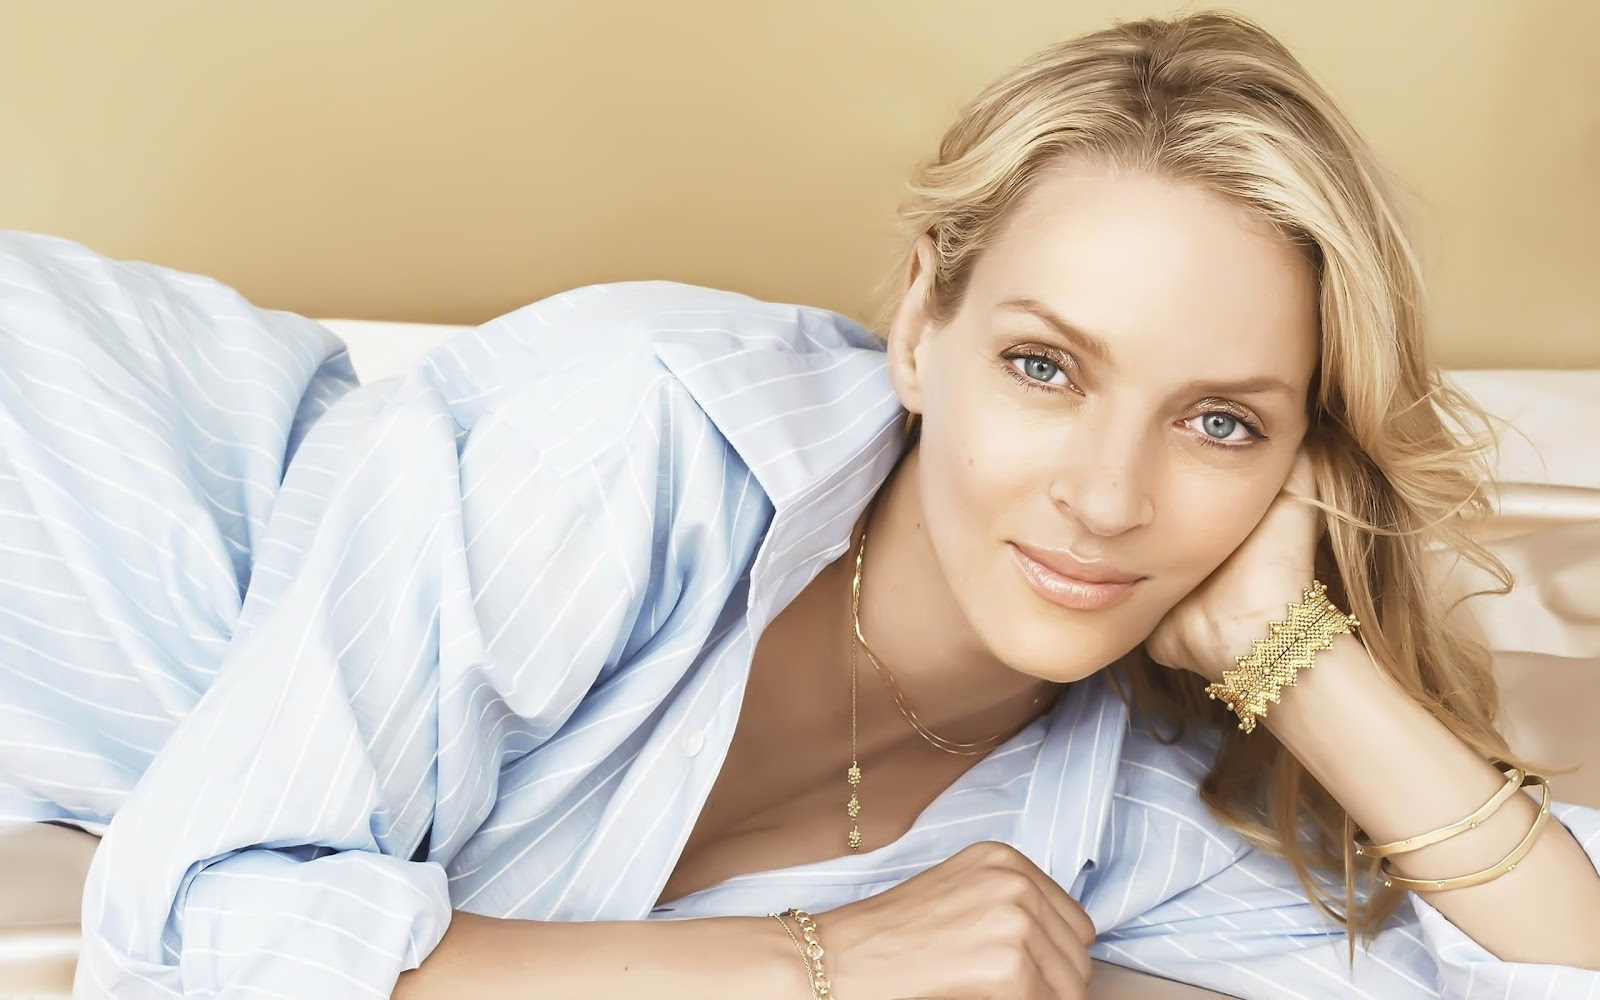 http://2.bp.blogspot.com/-NWV9e-tWW6M/T2NeZsu5dCI/AAAAAAAAJgw/op5xTjCchuA/s1600/Uma+Thurman+hd+Hot+Wallpapers+2012_5.jpg